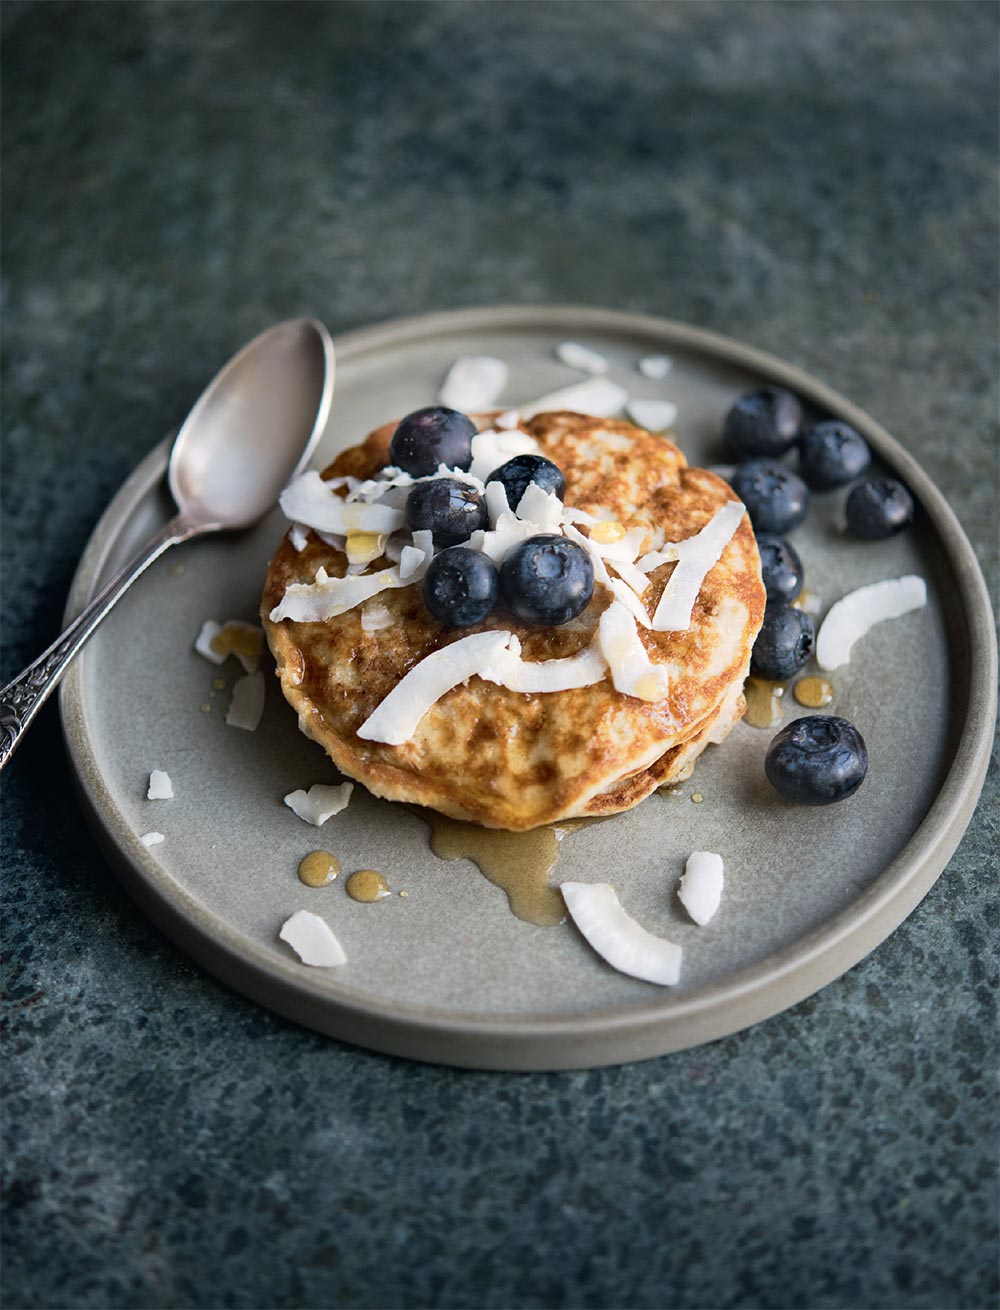 Naturally Gluten Free Coconut Pancakes, Amelia Freer